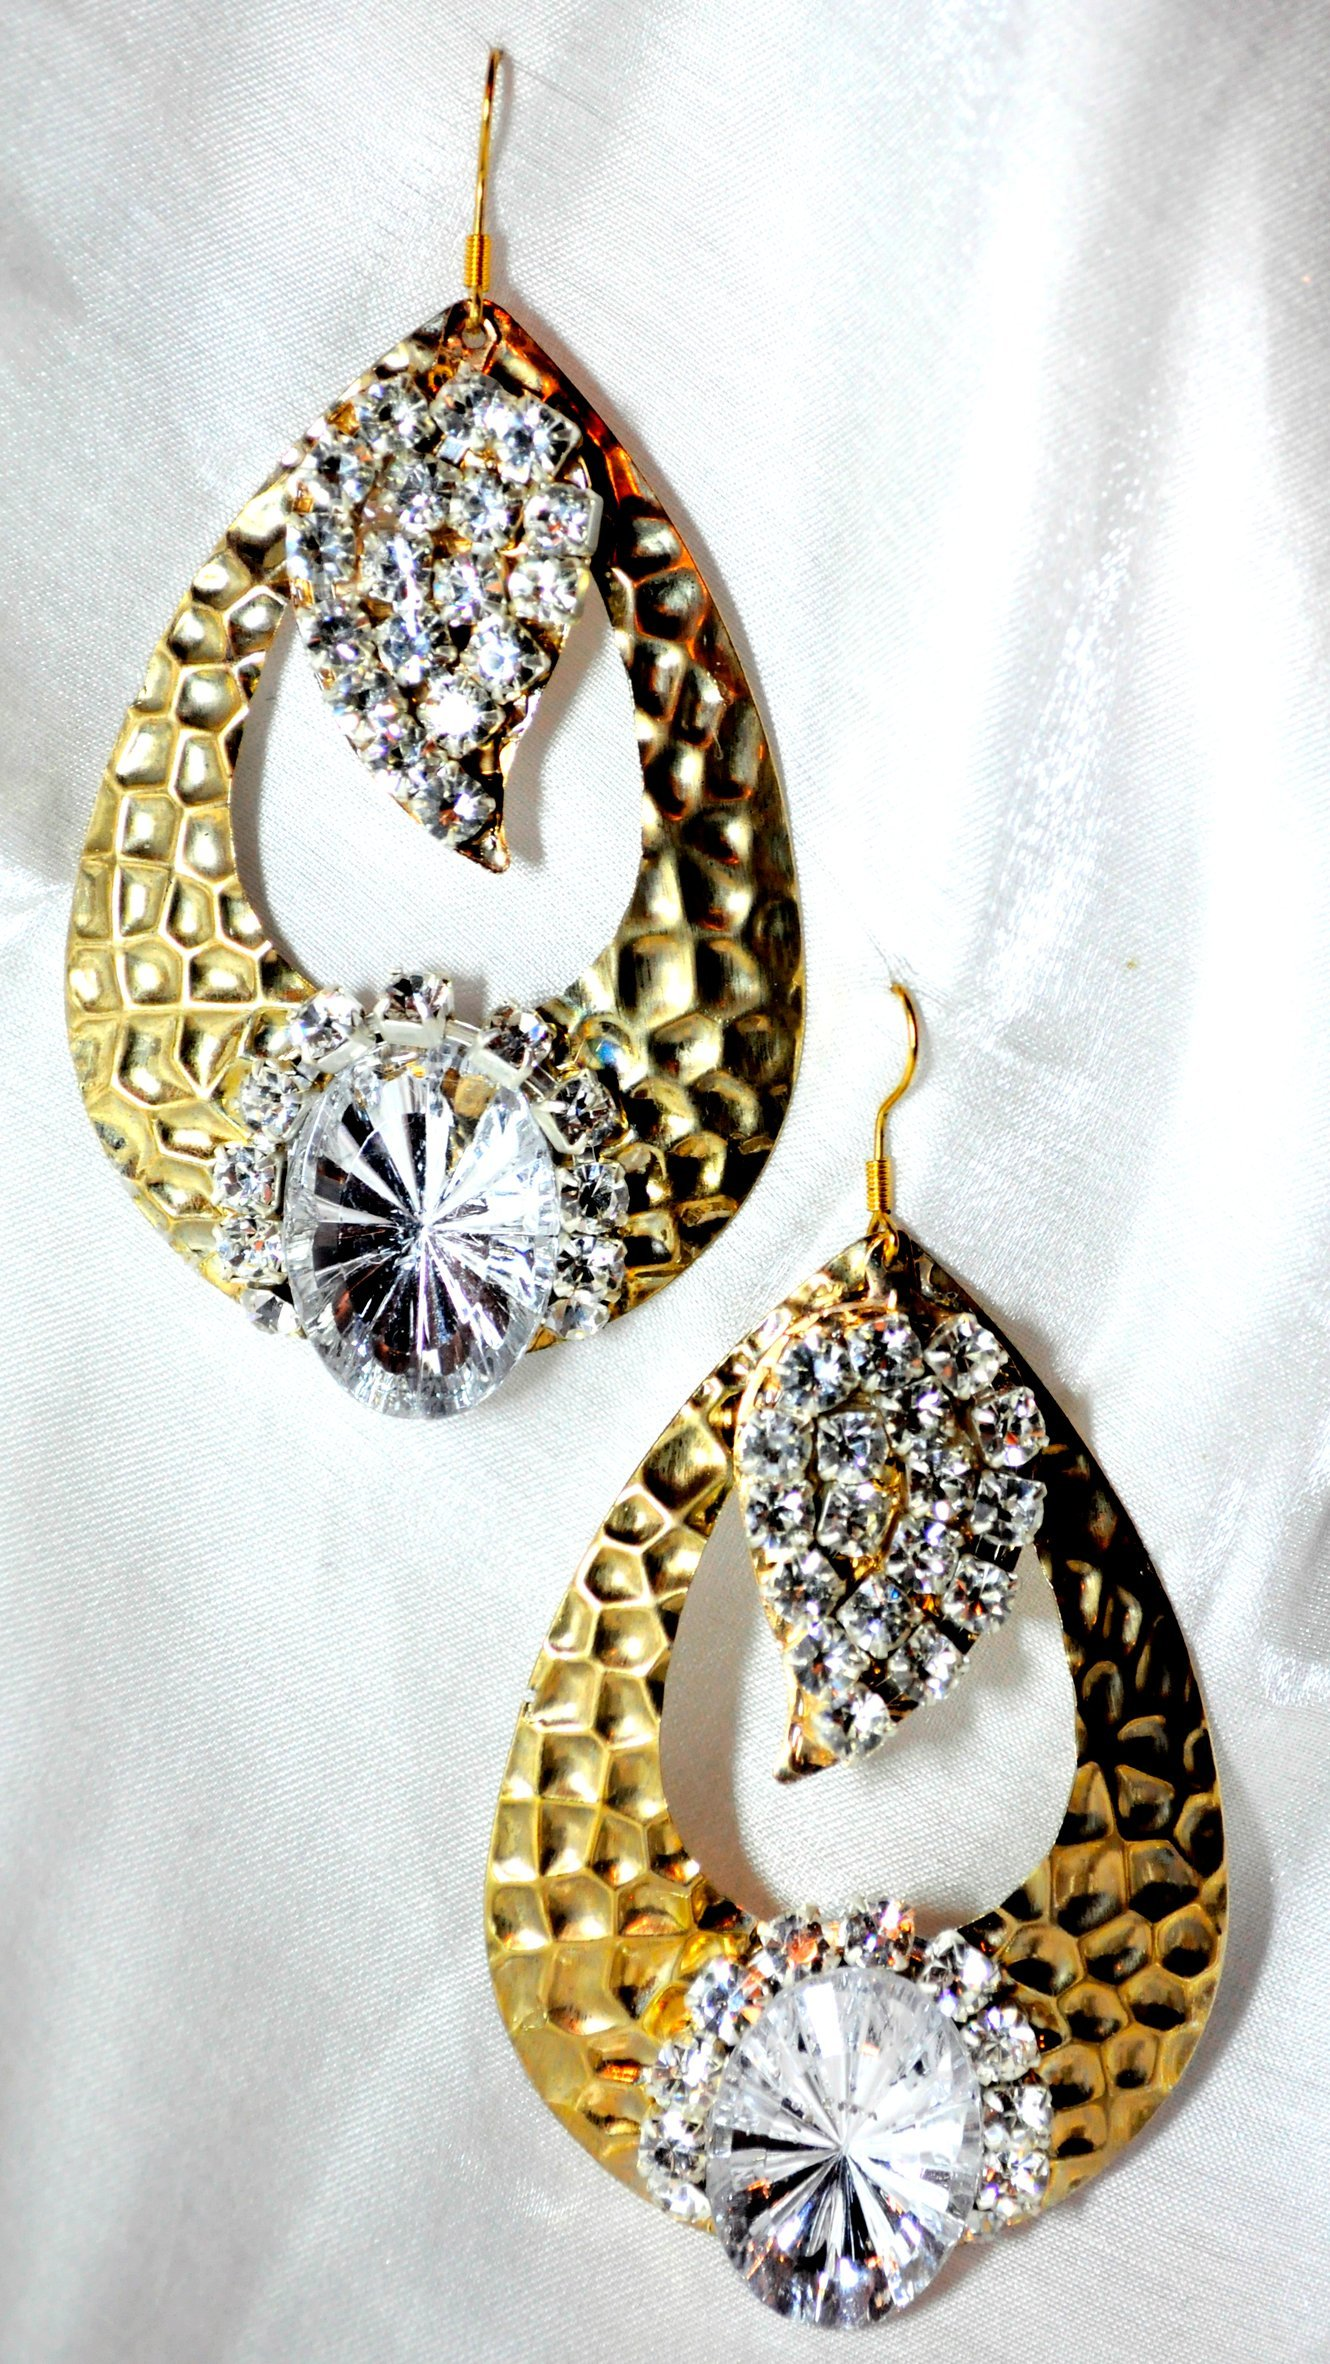 WHITE GOLD TRILLION SHAPE WITH CRYSTAL STONES